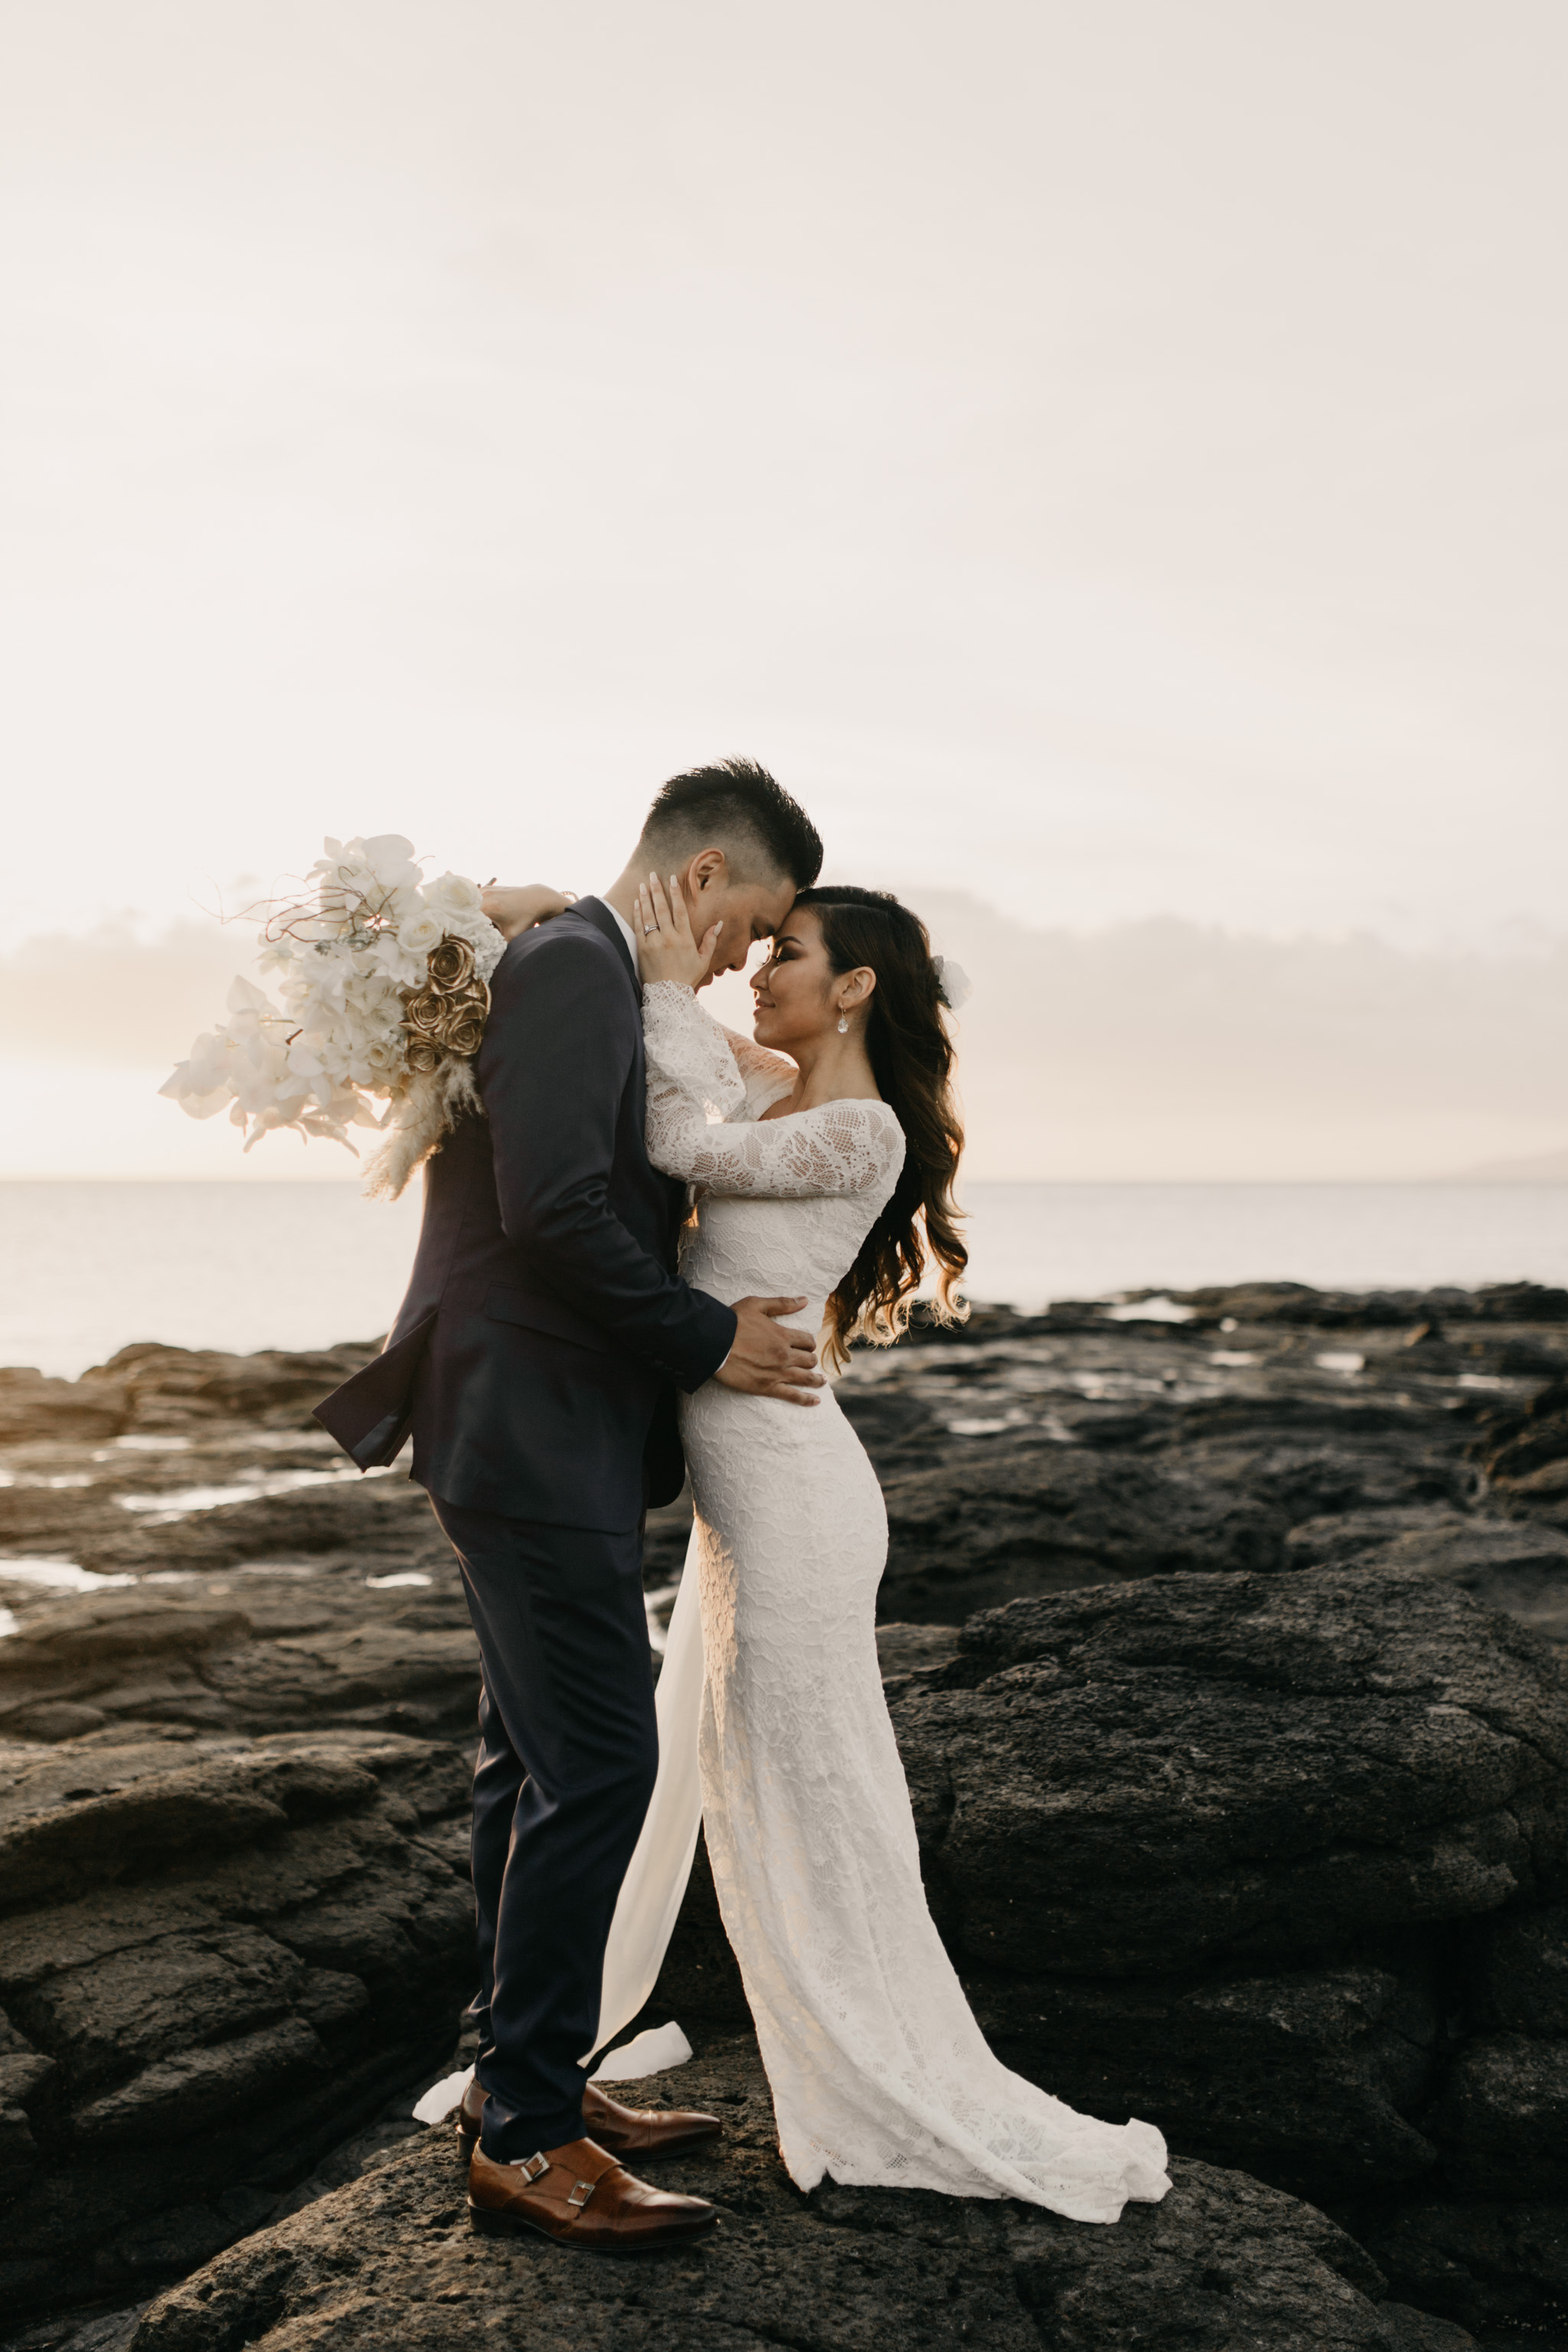 Dellables Floral Design and Grace Loves Lace Piper wedding gown   Merriman's Kapalua Maui wedding by Hawaii wedding photographer Desiree Leilani